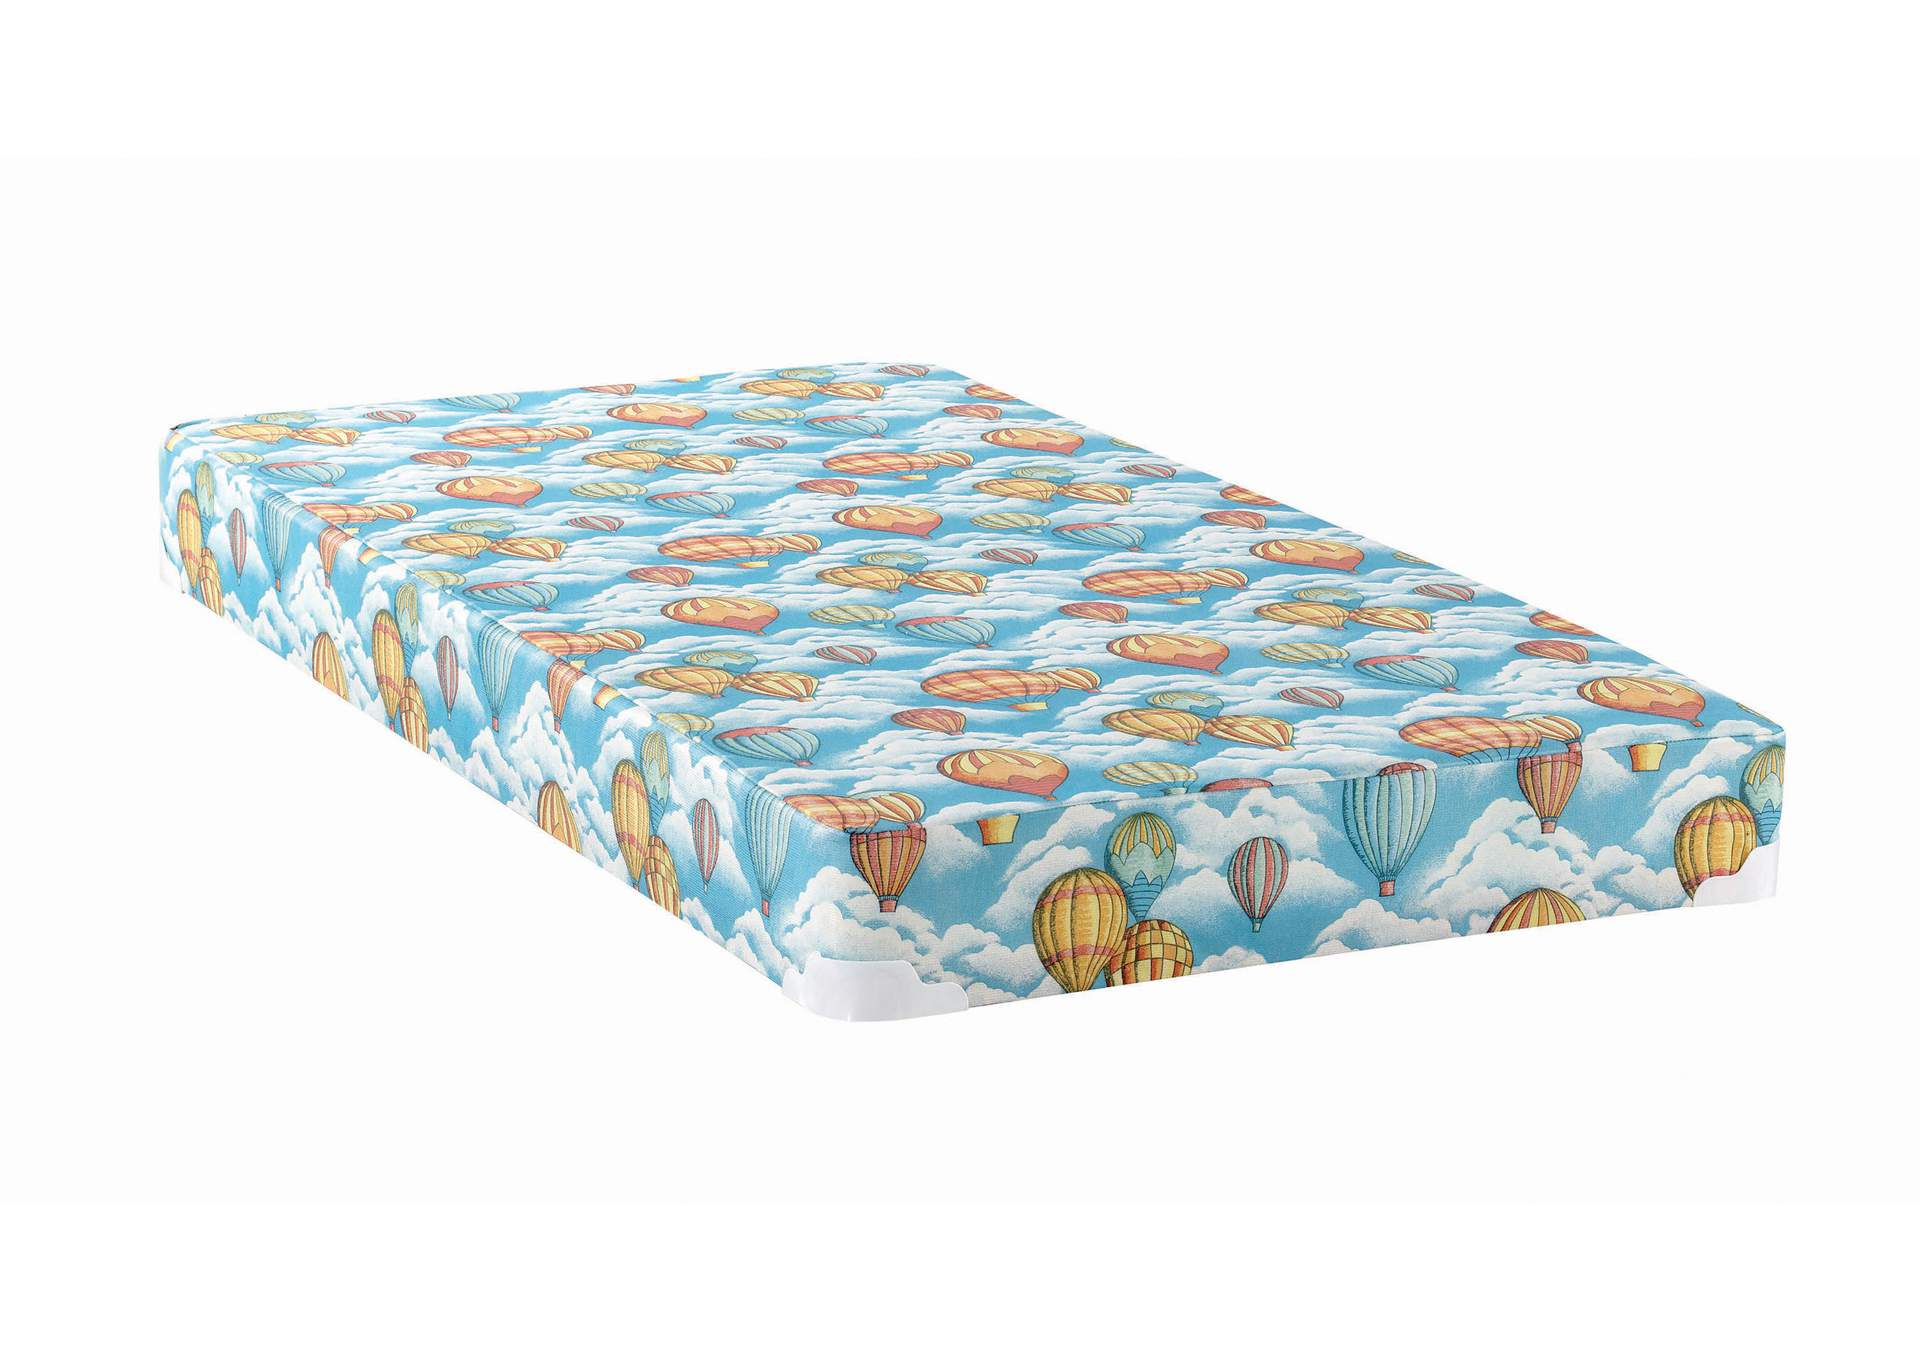 Balloon Blue Patterned Full Mattress,Coaster Furniture